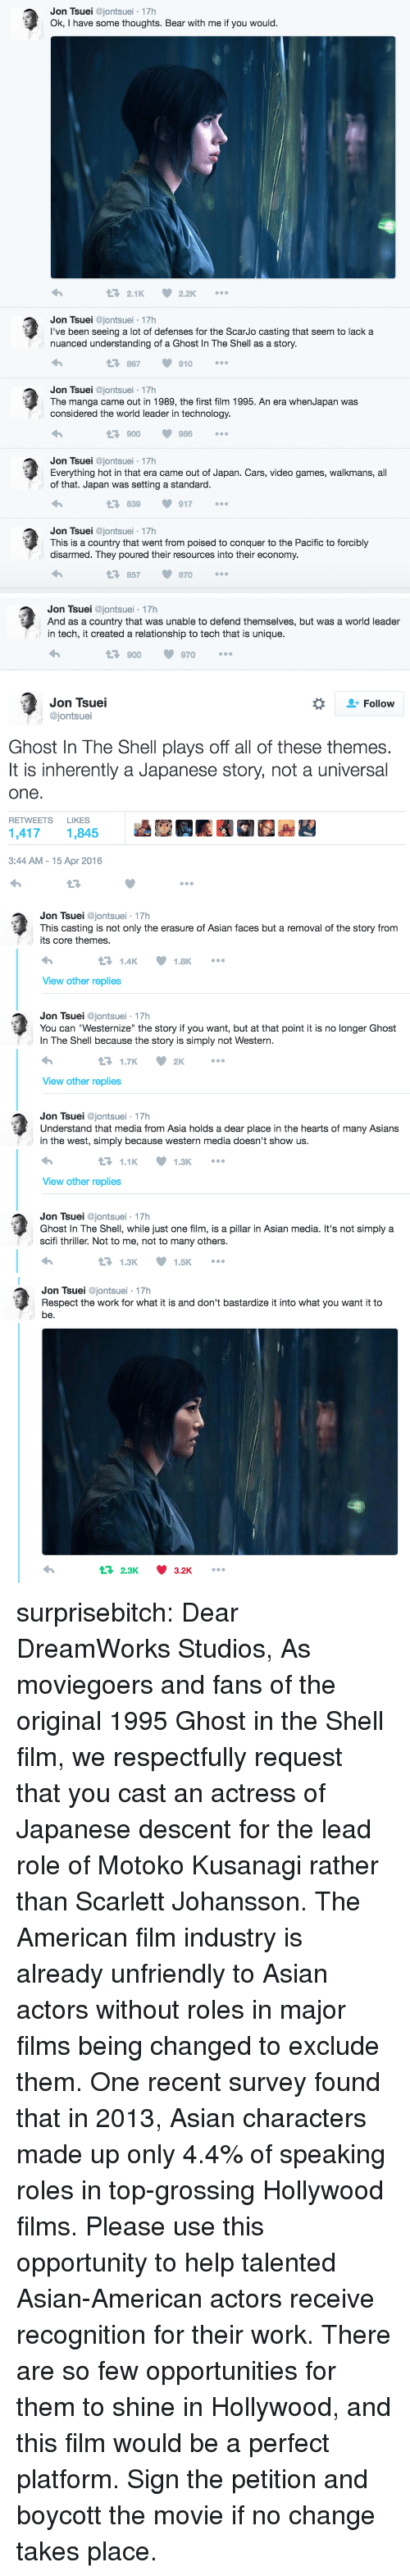 """Asian, Cars, and Respect: Jon Tsuei @jontsuei 17h  Ok, I have some thoughts. Bear with me if you would.  2.1K 2.2K  Jon Tsuei @jontsuei 17h  l've been seeing a lot of defenses for the ScarJo casting that seem to lack a  nuanced understanding of a Ghost In The Shell as a story.  867  910  Jon Tsuei @jontsuei 17h  The manga came out in 1989, the first film 1995. An era whenJapan was  considered the world leader in technology  900 986  Jon Tsuei @jontsuei 17h  Everything hot in that era came out of Japan. Cars, video games, walkmans, all  of that. Japan was setting a standard  13 839  917  Jon Tsuei @jontsuei 17h  This is a country that went from poised to conquer to the Pacific to forcibly  disarmed. They poured their resources into their economy  857870   Jon Tsuei @jontsuei- 17h  And as a country that was unable to defend themselves, but was a world leader  in tech, it created a relationship to tech that is unique.  900  970  Jon Tsuei  @jontsuei  *  Follow  Ghost In The Shell plays off all of these themes.  It is inherently a Japanese story, not a universal  one.  RETWEETS LIKES  14171,845  3:44 AM -15 Apr 2016   Jon Tsuei @jontsuei 17h  This casting is not only the erasure of Asian faces but a removal of the story from  its core themes  1.4K  1.8K  View other replies  Jon Tsuei @jontsuei 17h  You can """"Westernize"""" the story if you want, but at that point it is no longer Ghost  In The Shell because the story is simply not Western  1.7K  2K  View other replies  Jon Tsuei @jontsuei 17h  Understand that media from Asia holds a dear place in the hearts of many Asians  in the west, simply because western media doesn't show us  1.1K  1.3K  View other replies  Jon Tsuei @jontsuei 17h  Ghost In The Shell, while just one film, is a pillar in Asian media. It's not simply a  scifi thriller. Not to me, not to many others  1.3K  1.5K   Jon Tsuei @jontsuei 17h  Respect the work for what it is and don't bastardize it into what you want it to  be.  2.3K 3.2K surprisebitch:   Dear D"""